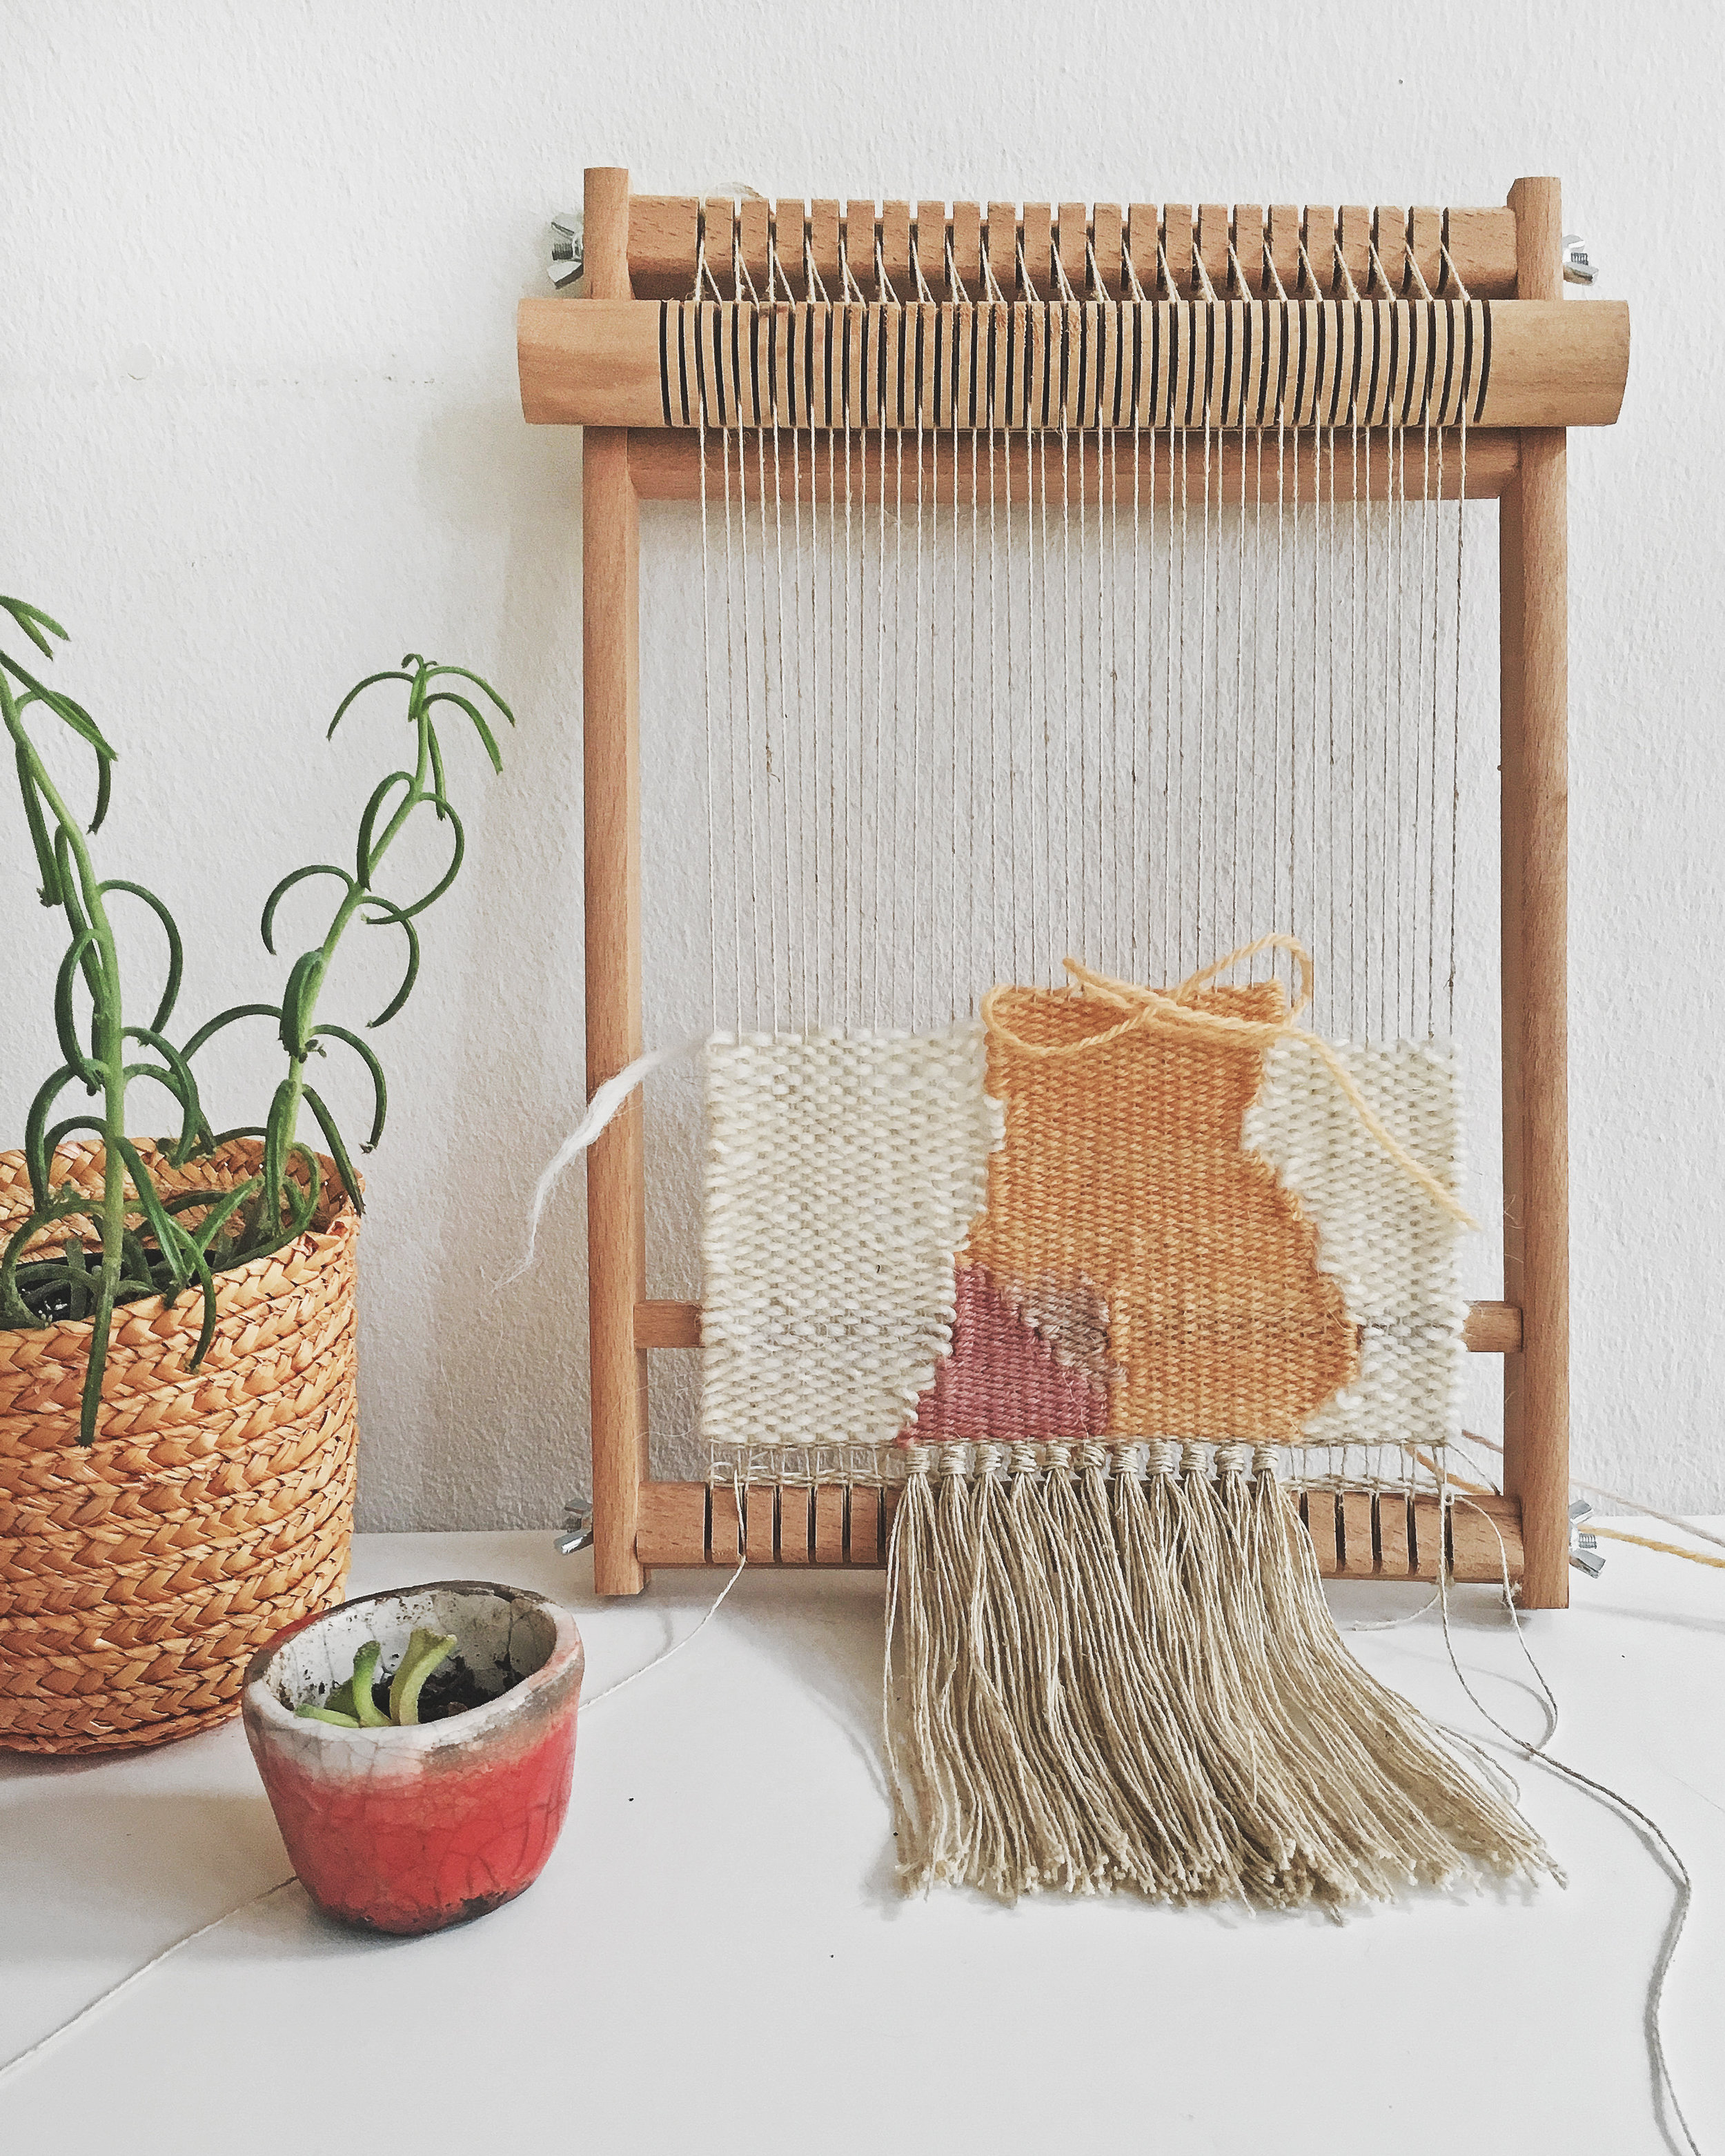 Showing up for a daily weaving practice on my frame loom with a heddle bar